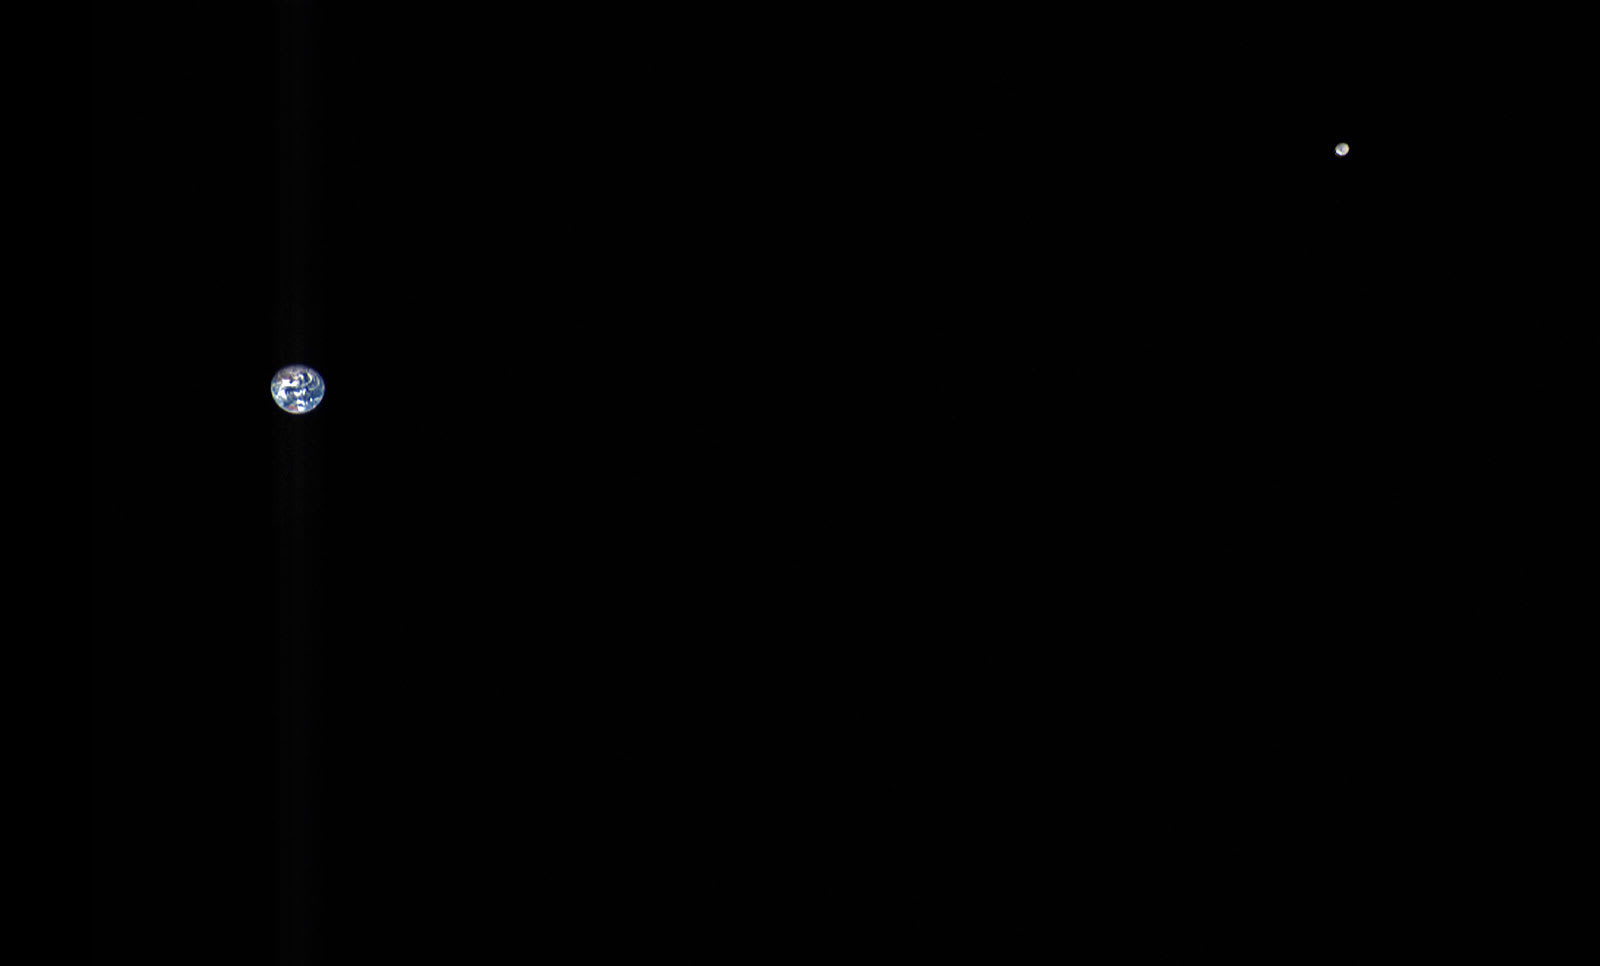 A portrait of Earth and the Moon from 3 million miles away